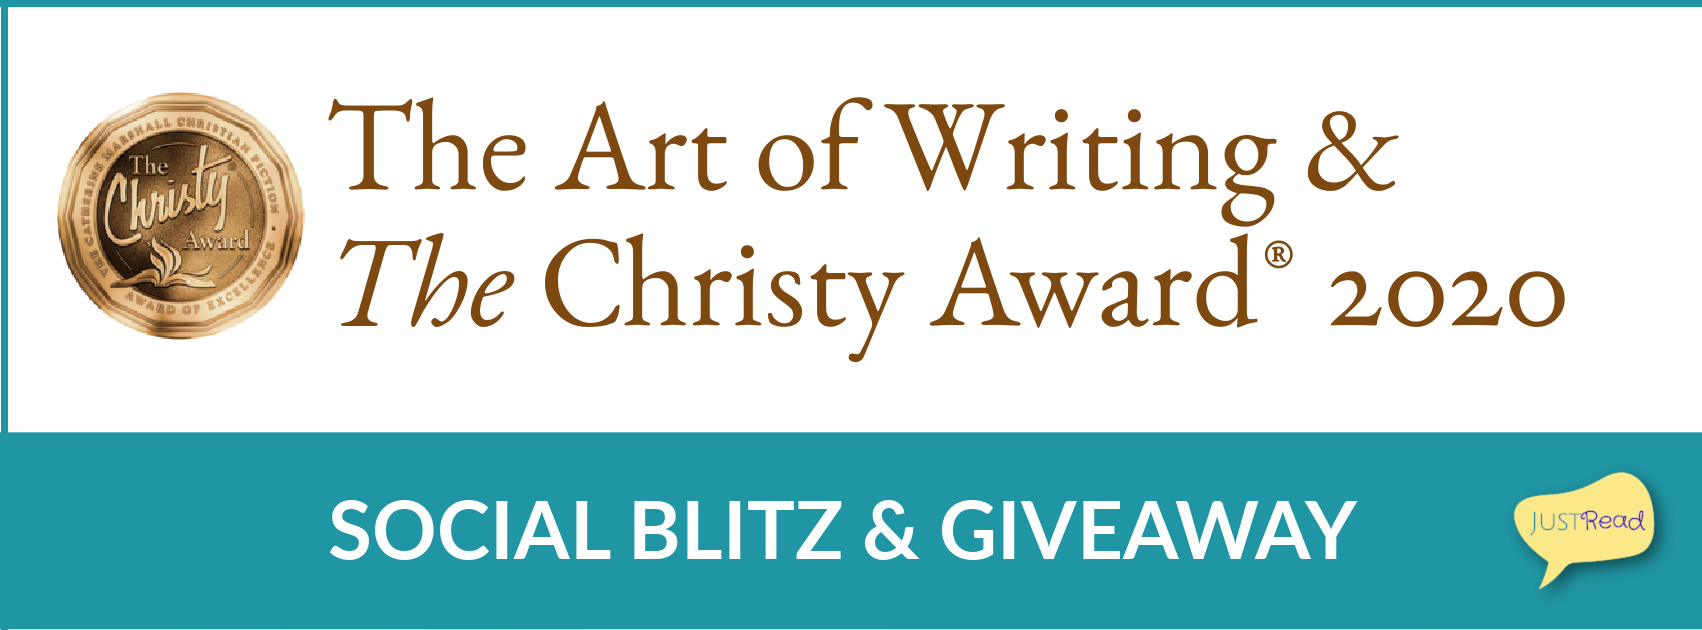 Welcome to The Art of Writing & The Christy Awards Webinar Series Giveaway!